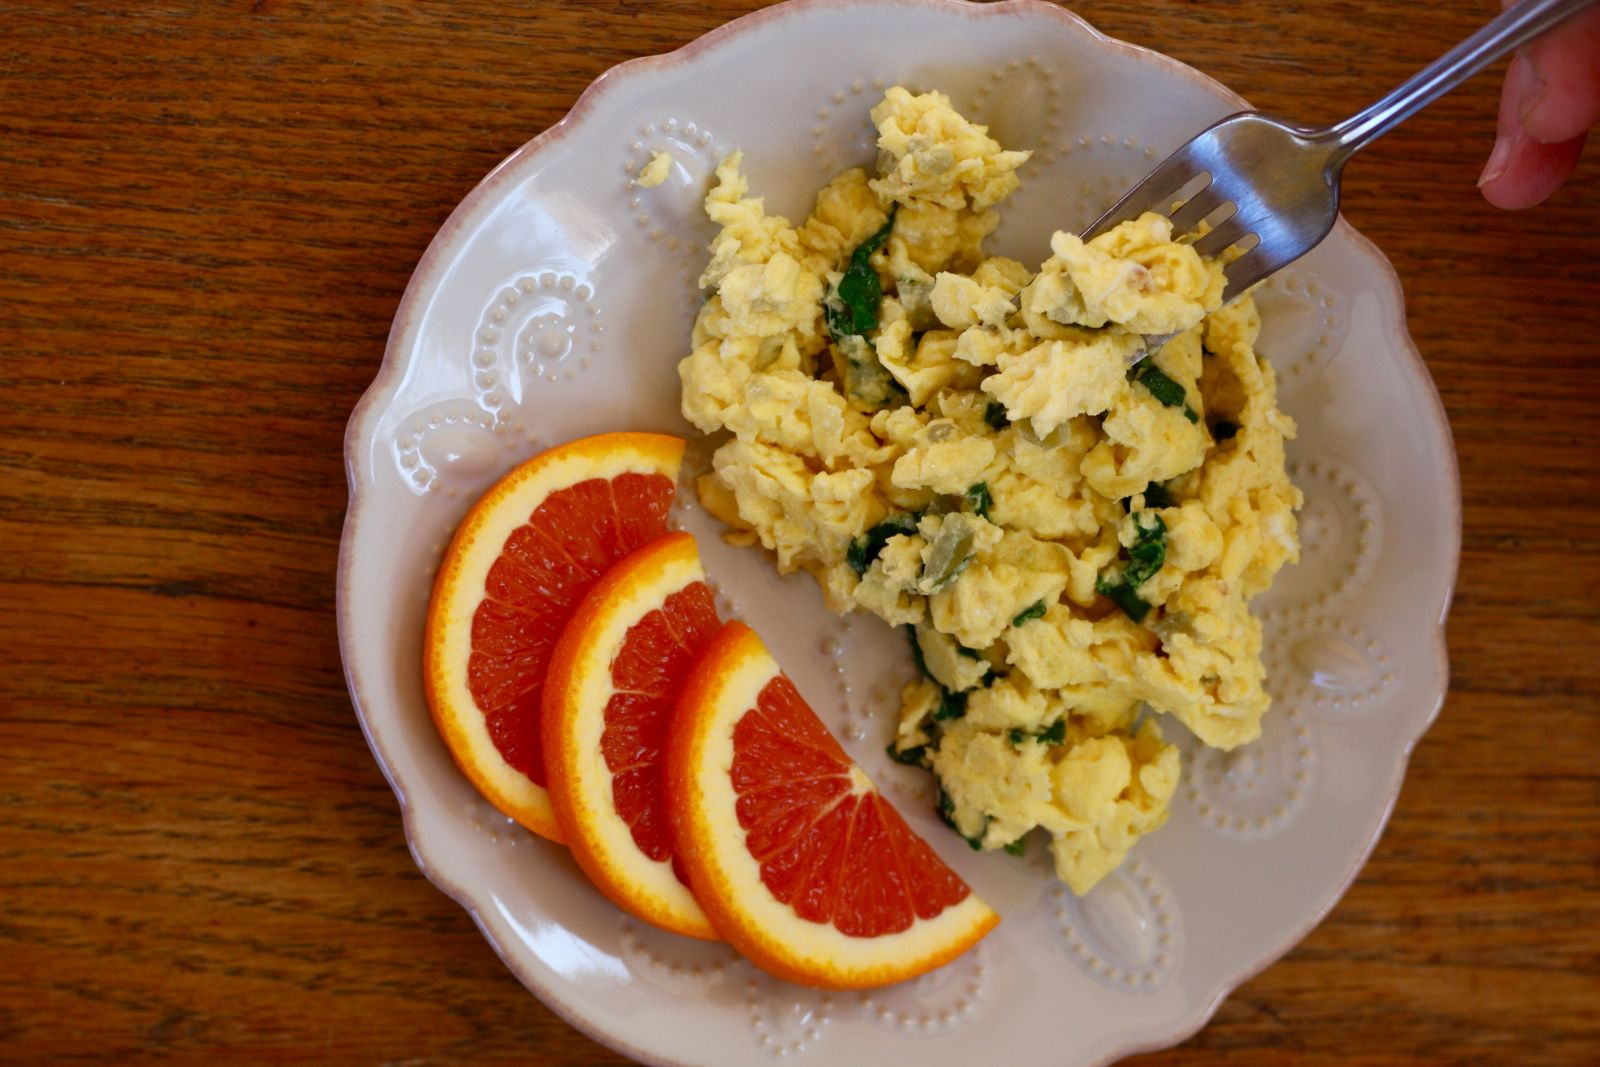 Chicken Breast And Scrambled Eggs With Cheddar Cheese